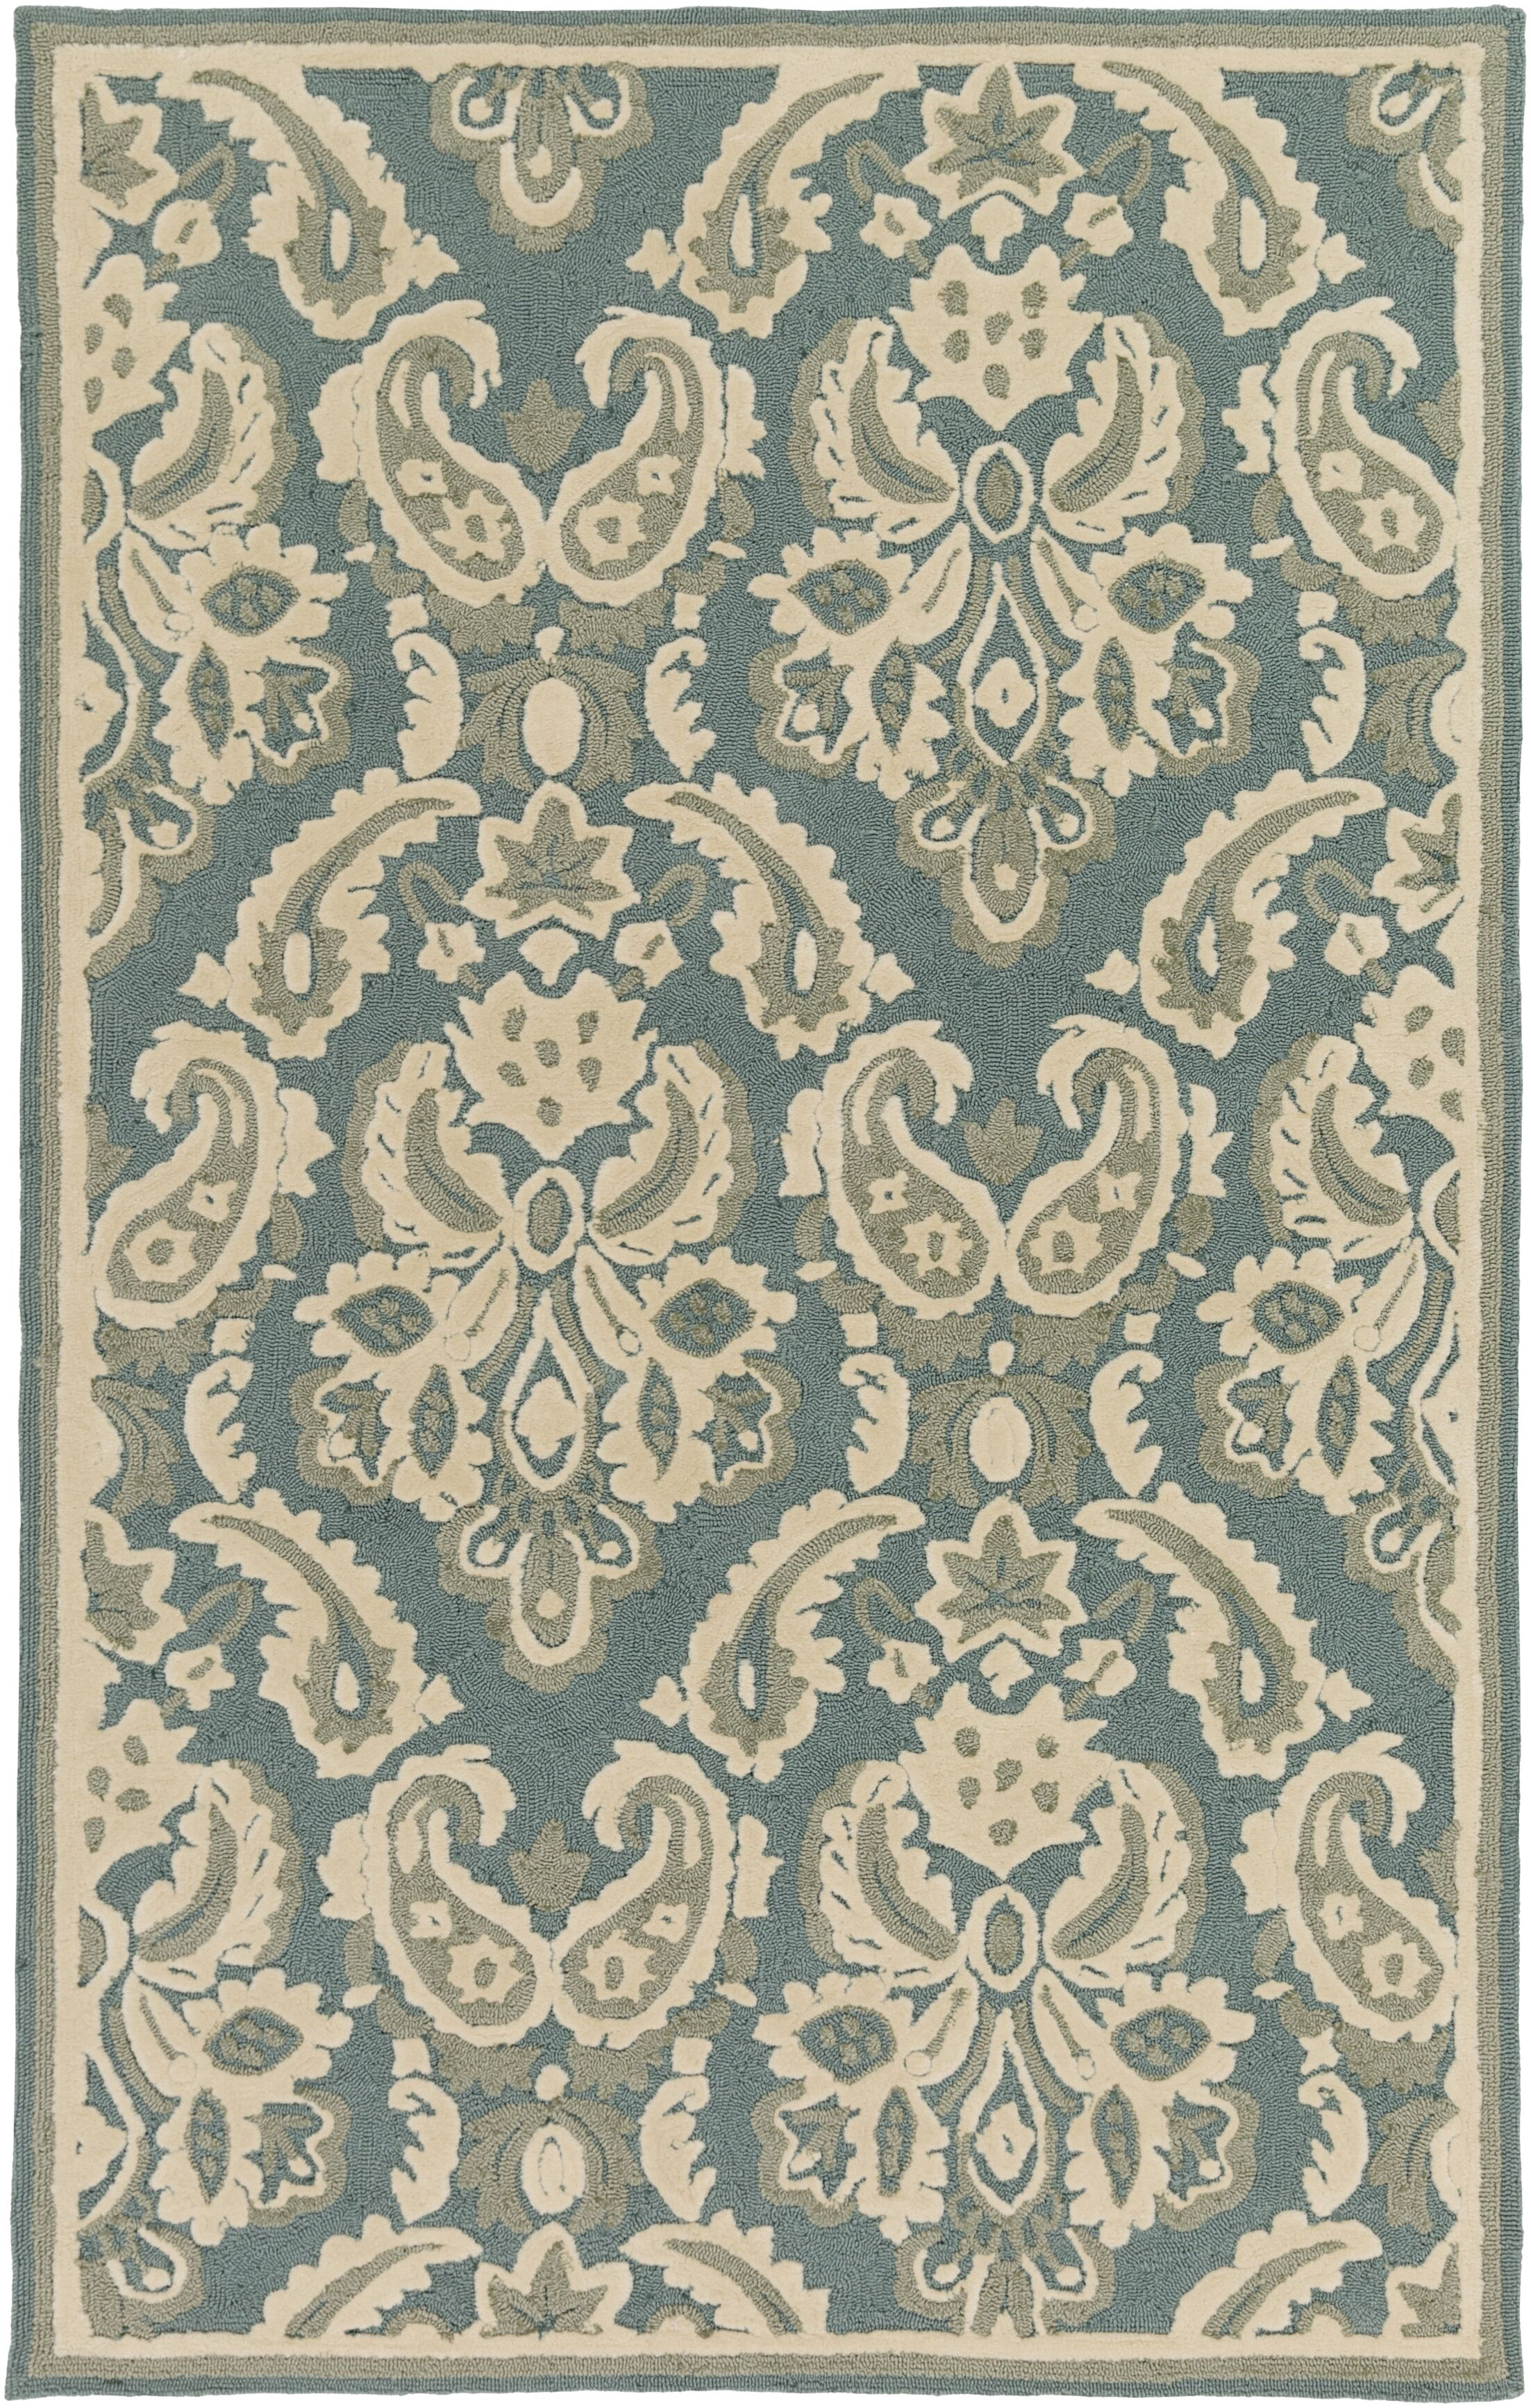 Bellville Ivory Hand-Hooked Indoor/Outdoor Area Rug Rug Size: Rectangle 5' x 7'6